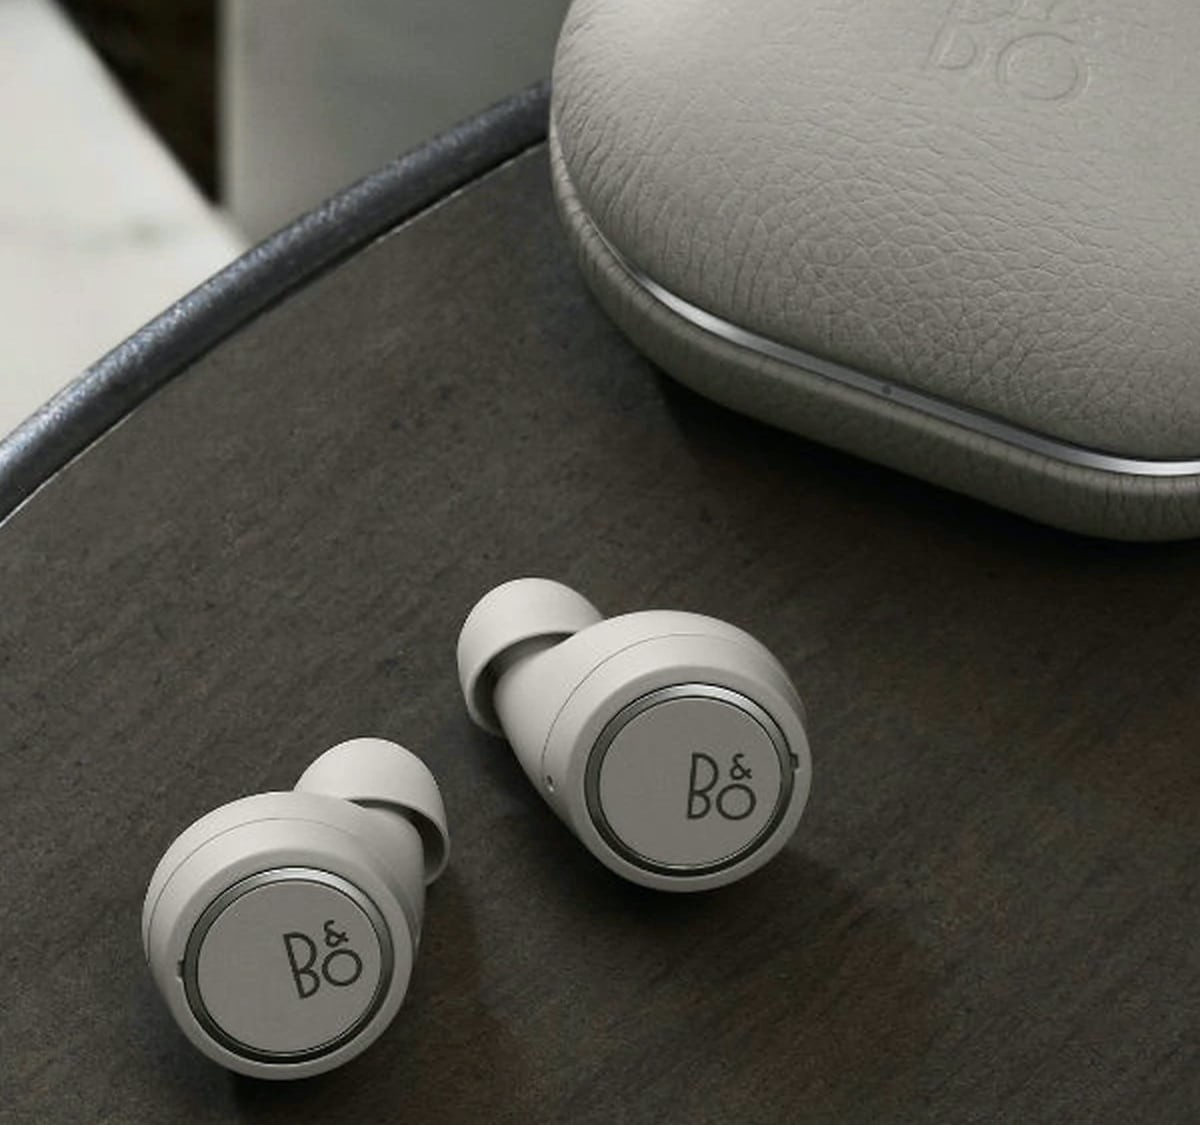 Bang & Olufsen Beoplay E8 3rd-Gen Wireless Earphones will make everyday sound even better